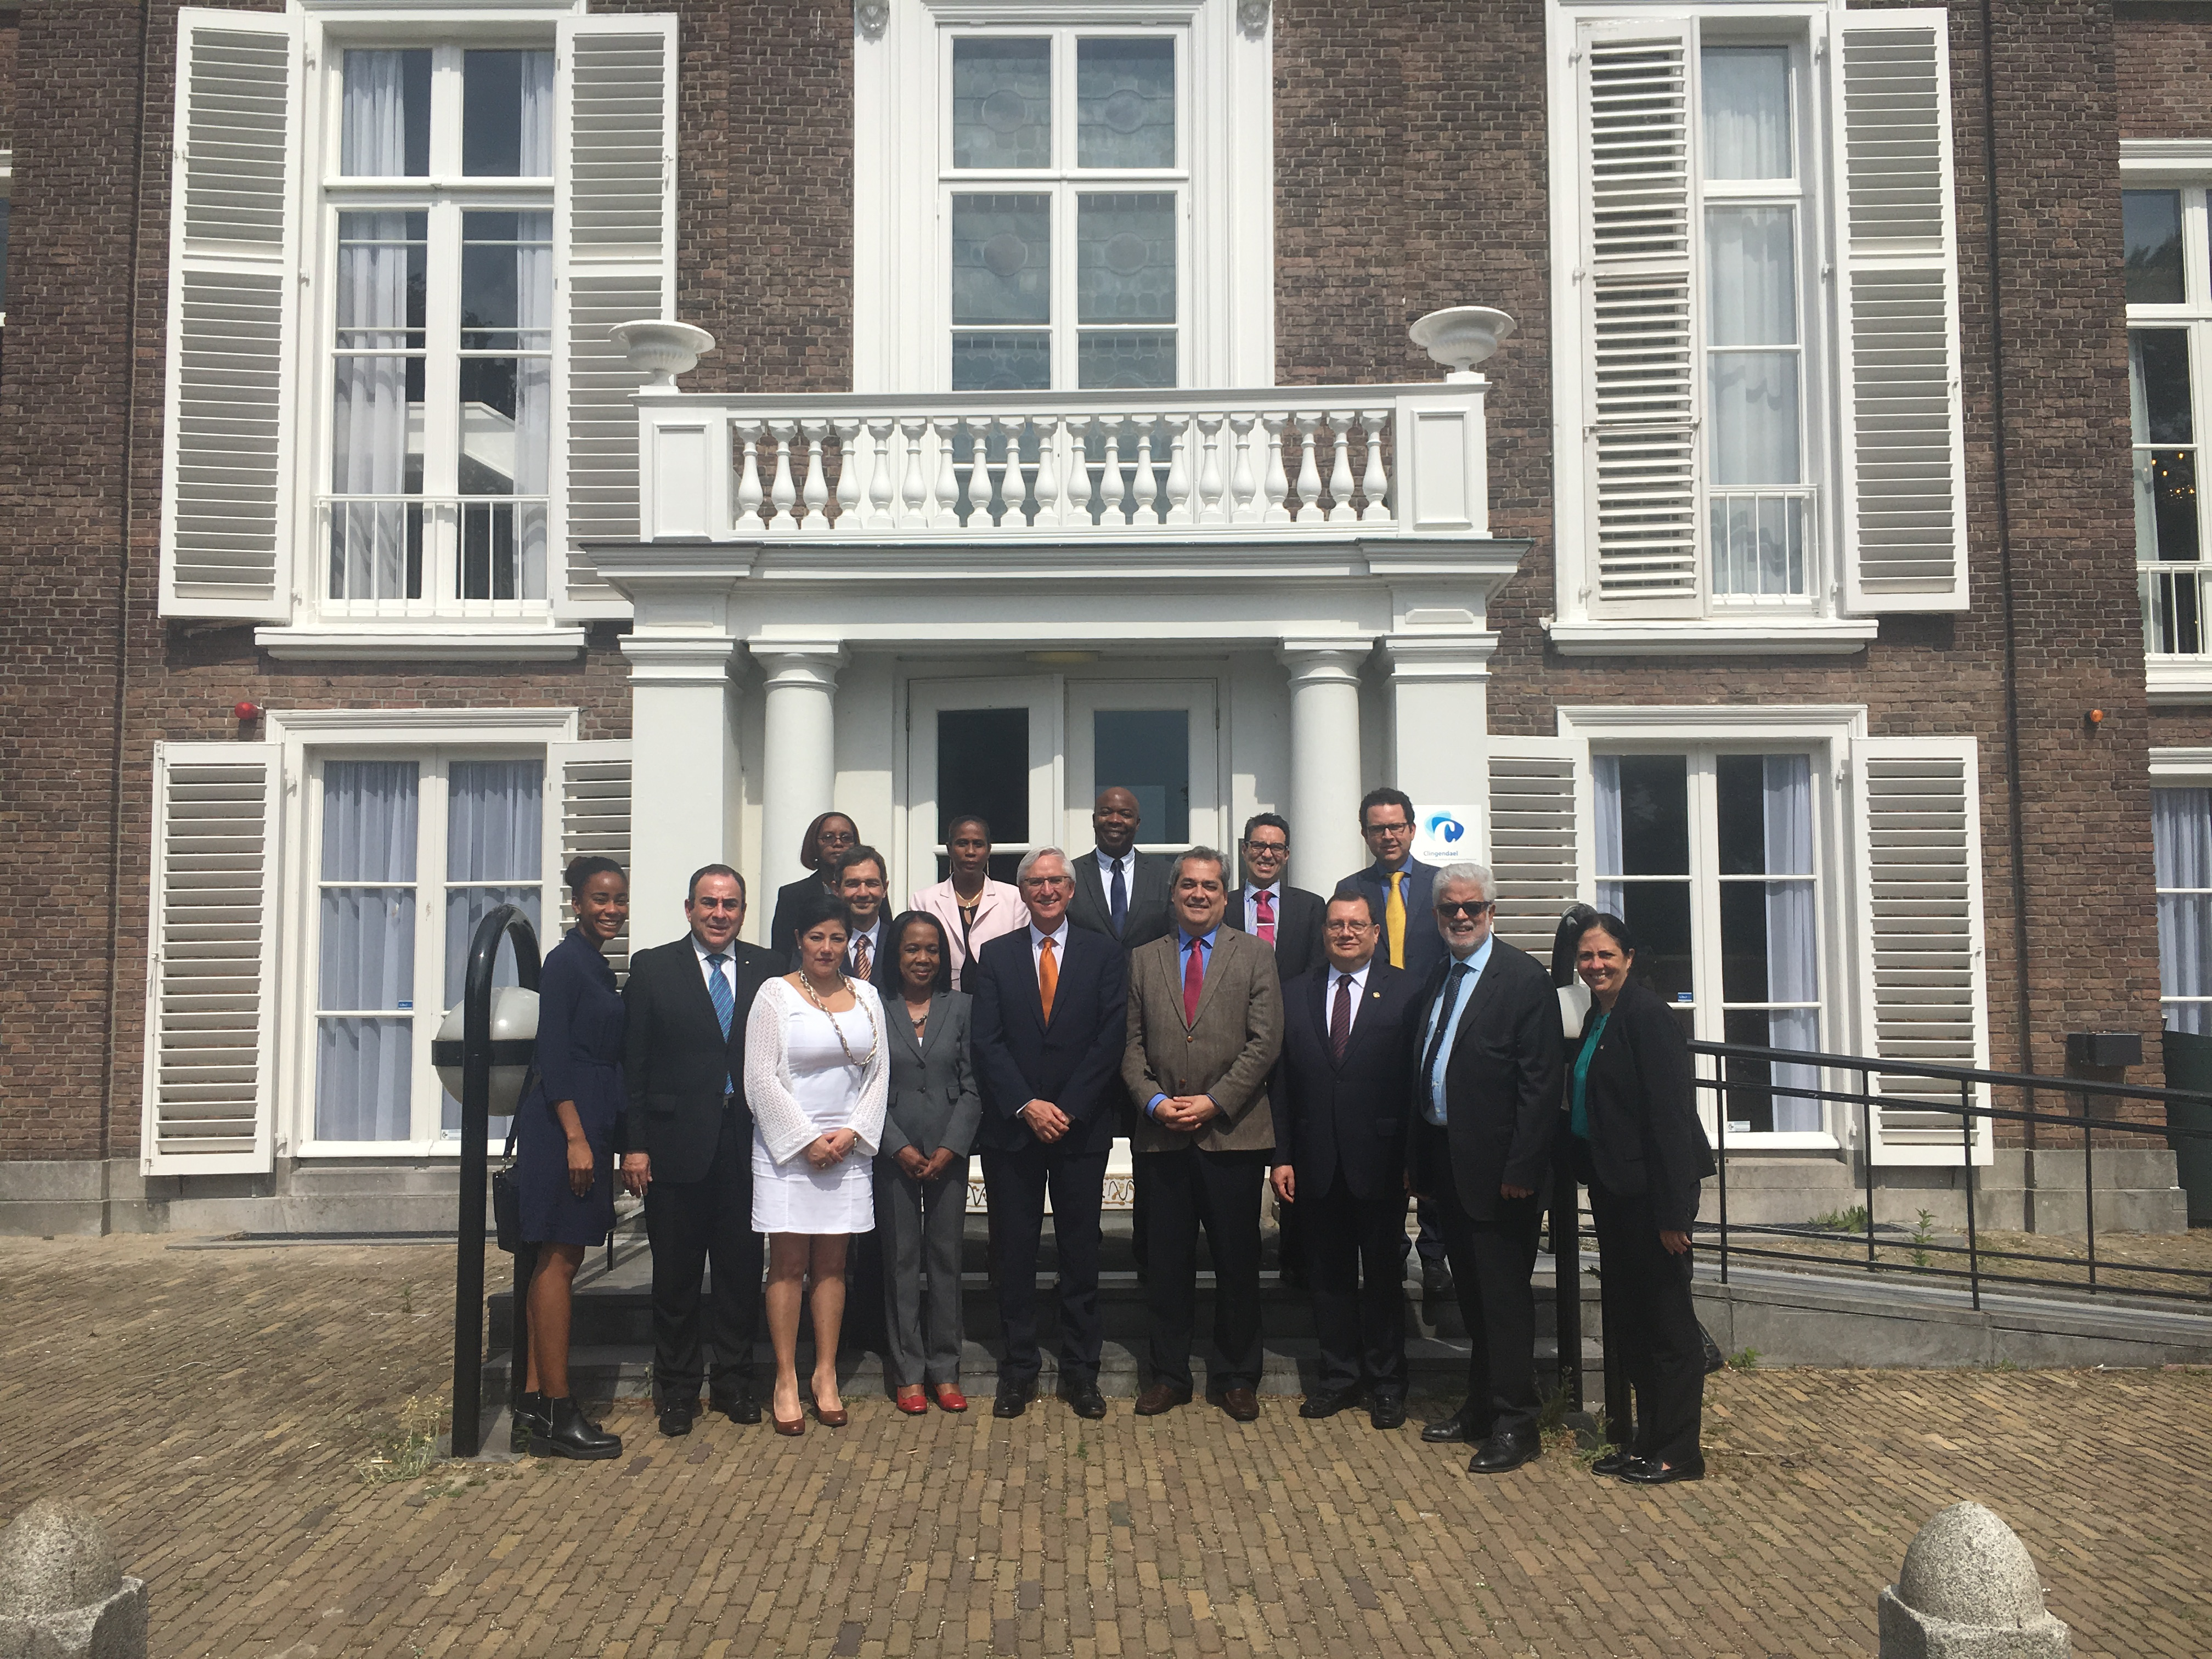 Ambassadors and other Representatives of Embassies in The Hague or Brussels together with Mr. Ron Ton, Director of Clingendael Academy